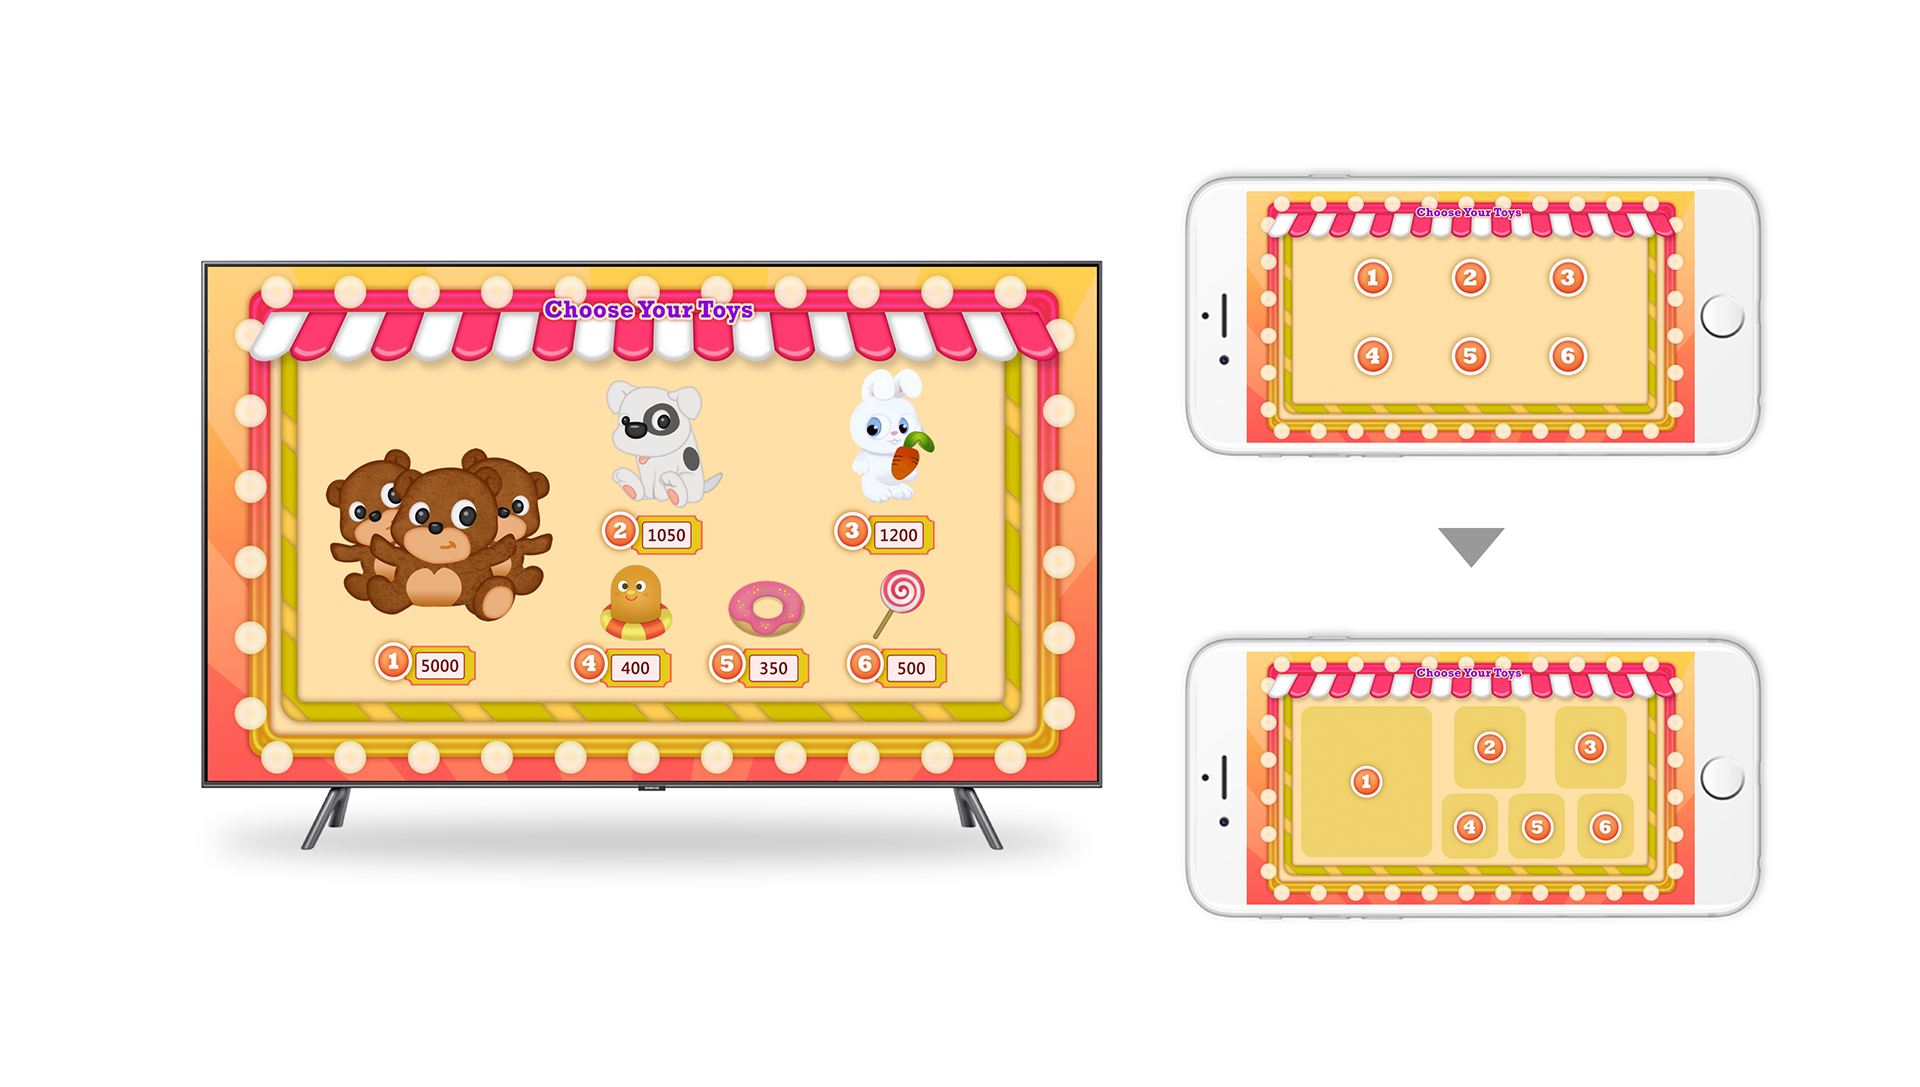 Gift store UI on TV and Mobile. I matched the UI layout on TV screen and controller for young kids who can't read numbers can easily choose what to buy.